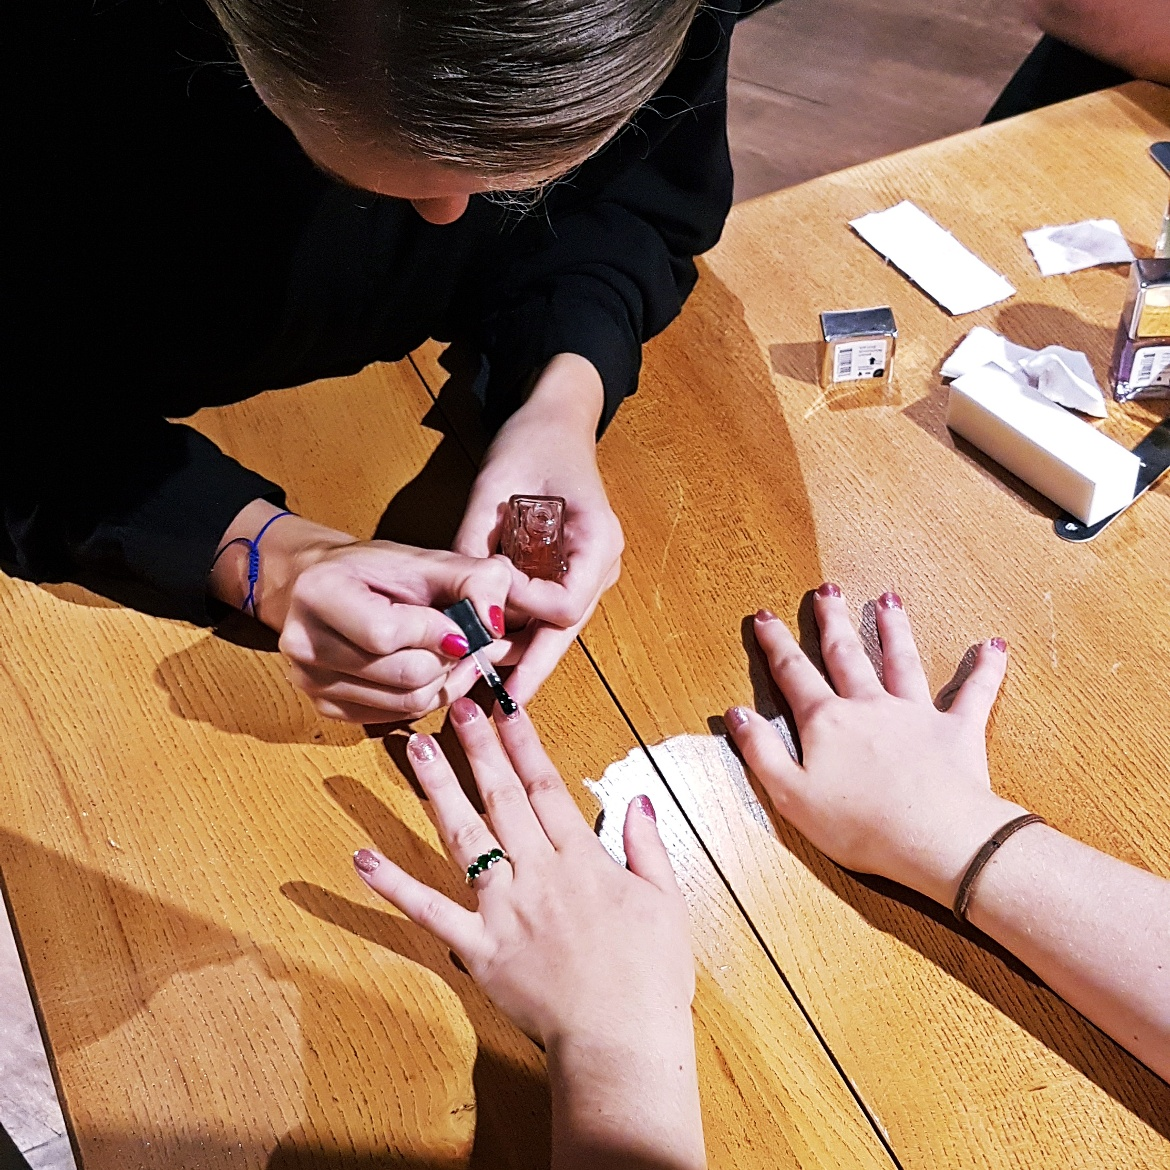 Keeleigh getting her nails painted by Nails Inc - Tune in with Joy the Store, Leeds shop review by BeckyBecky Blogs